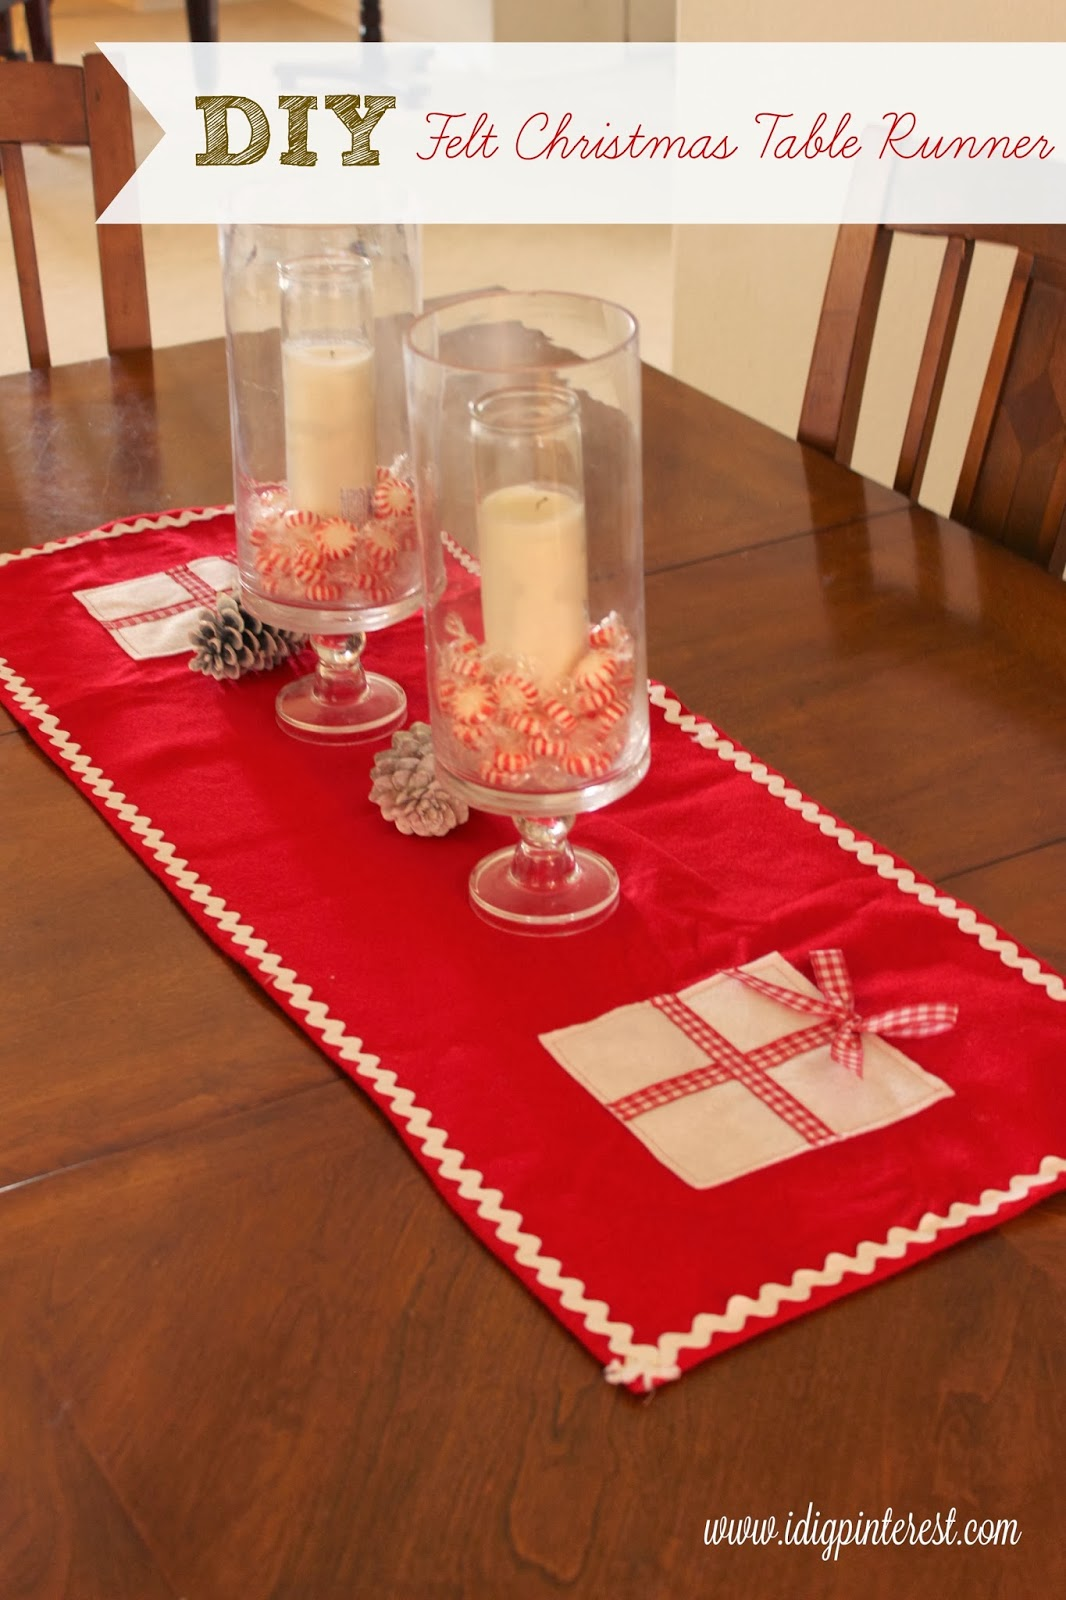 diy felt christmas table runner i dig pinterest. Black Bedroom Furniture Sets. Home Design Ideas